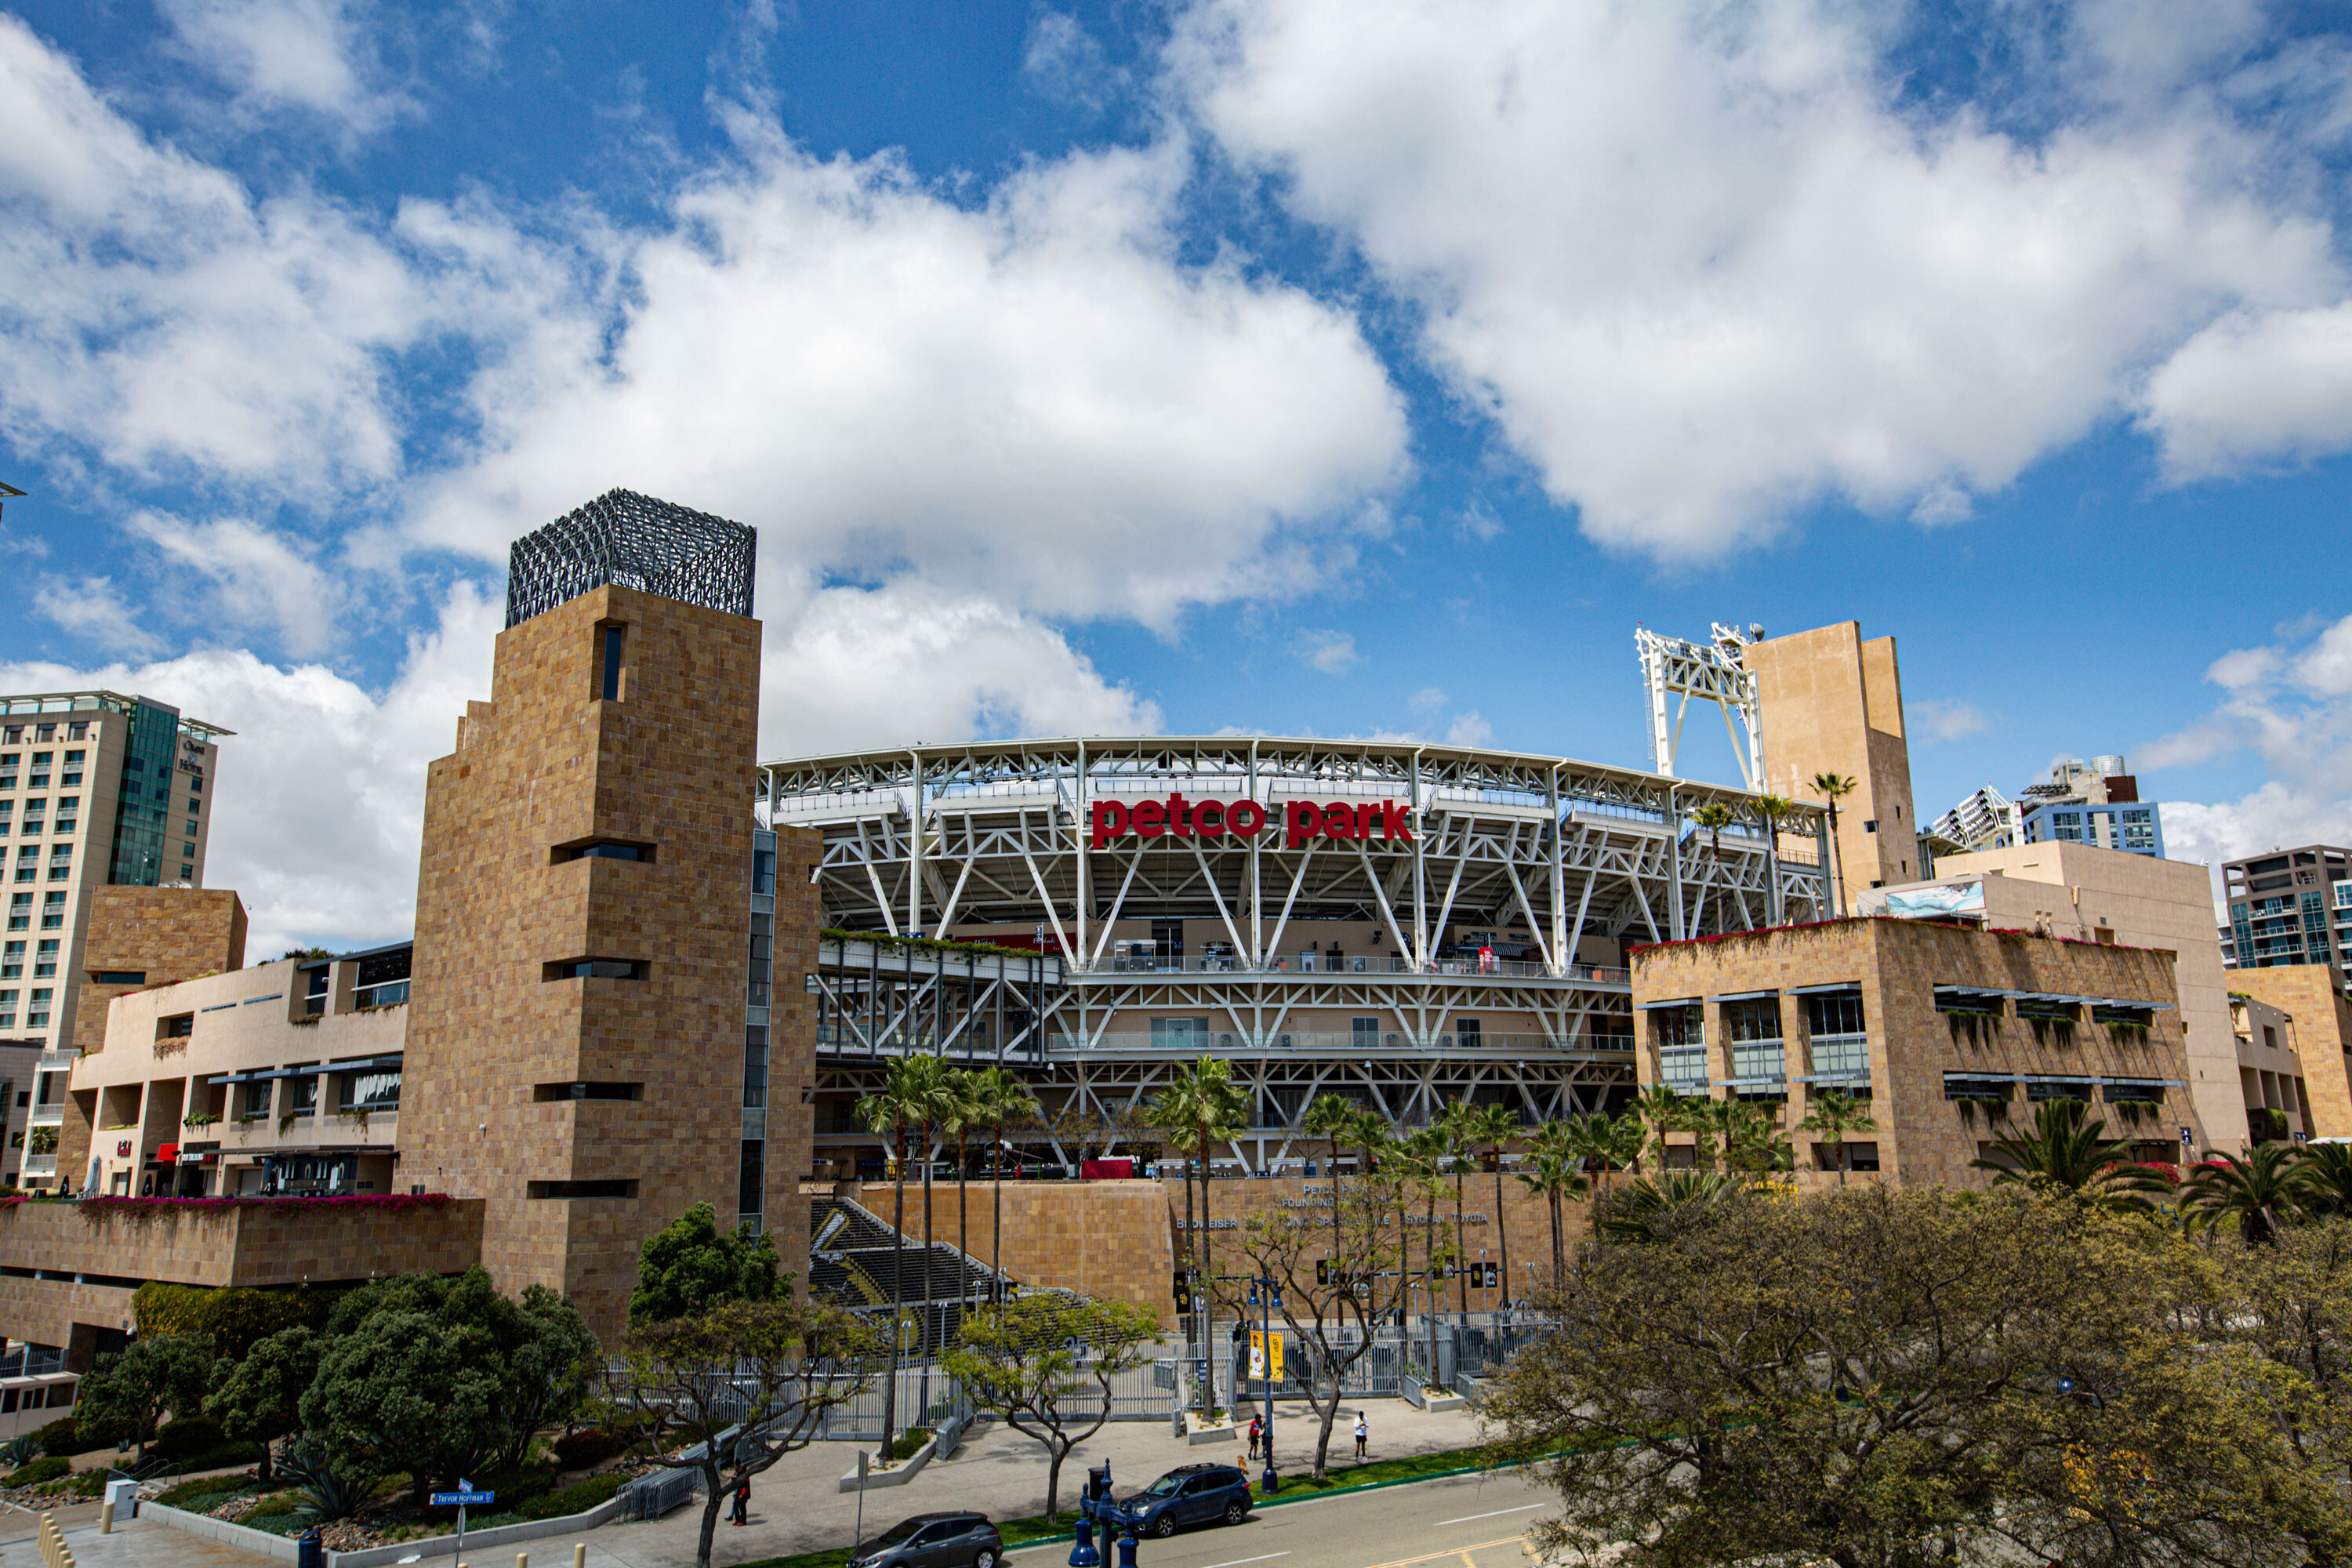 Mother and toddler fall to their deaths at San Diego Padres baseball stadium, police say